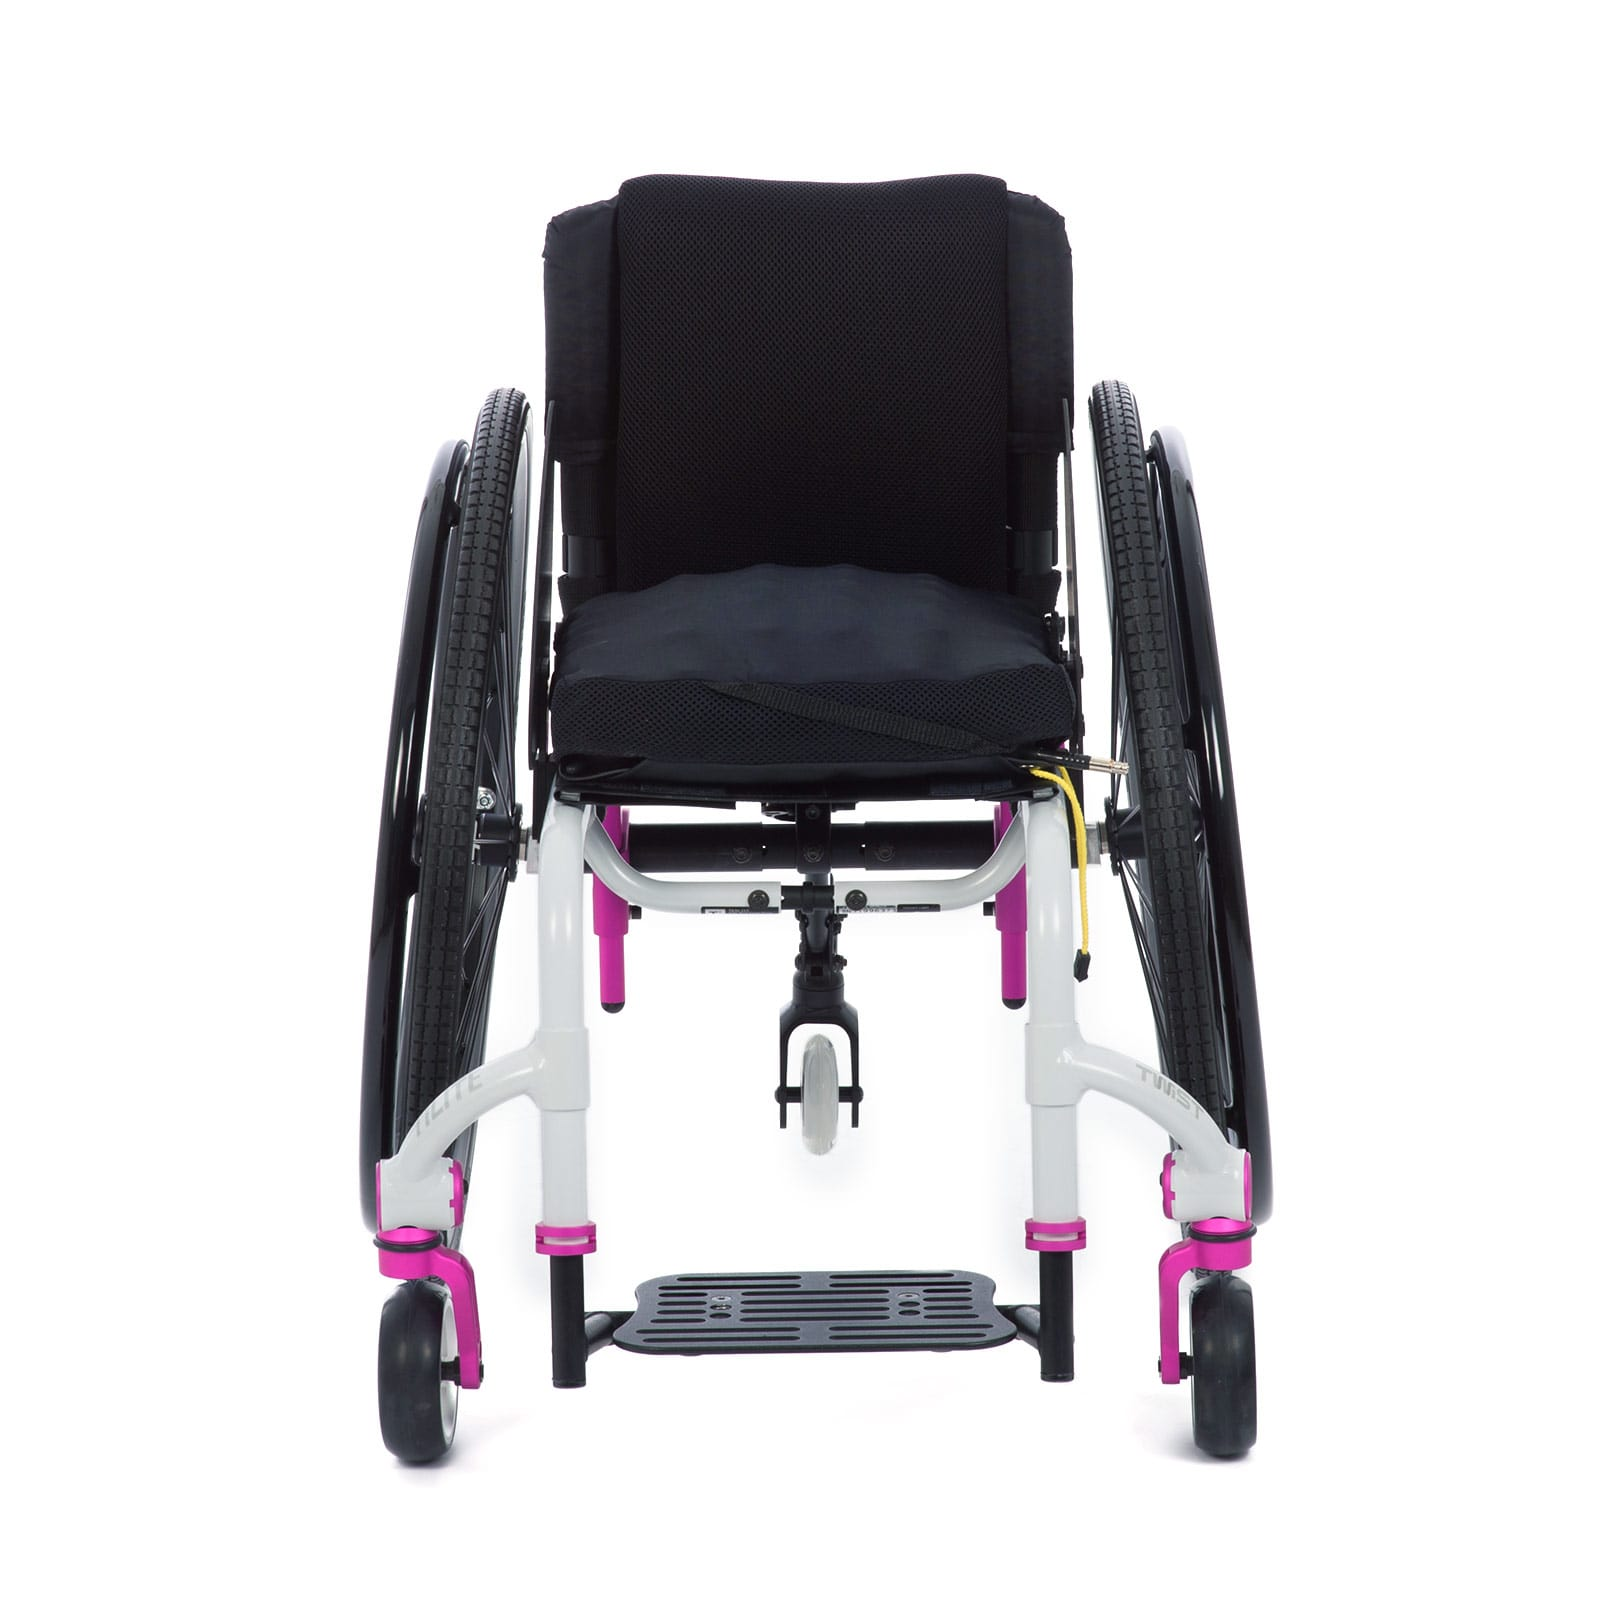 White-Pink Front view of the Wheelchair